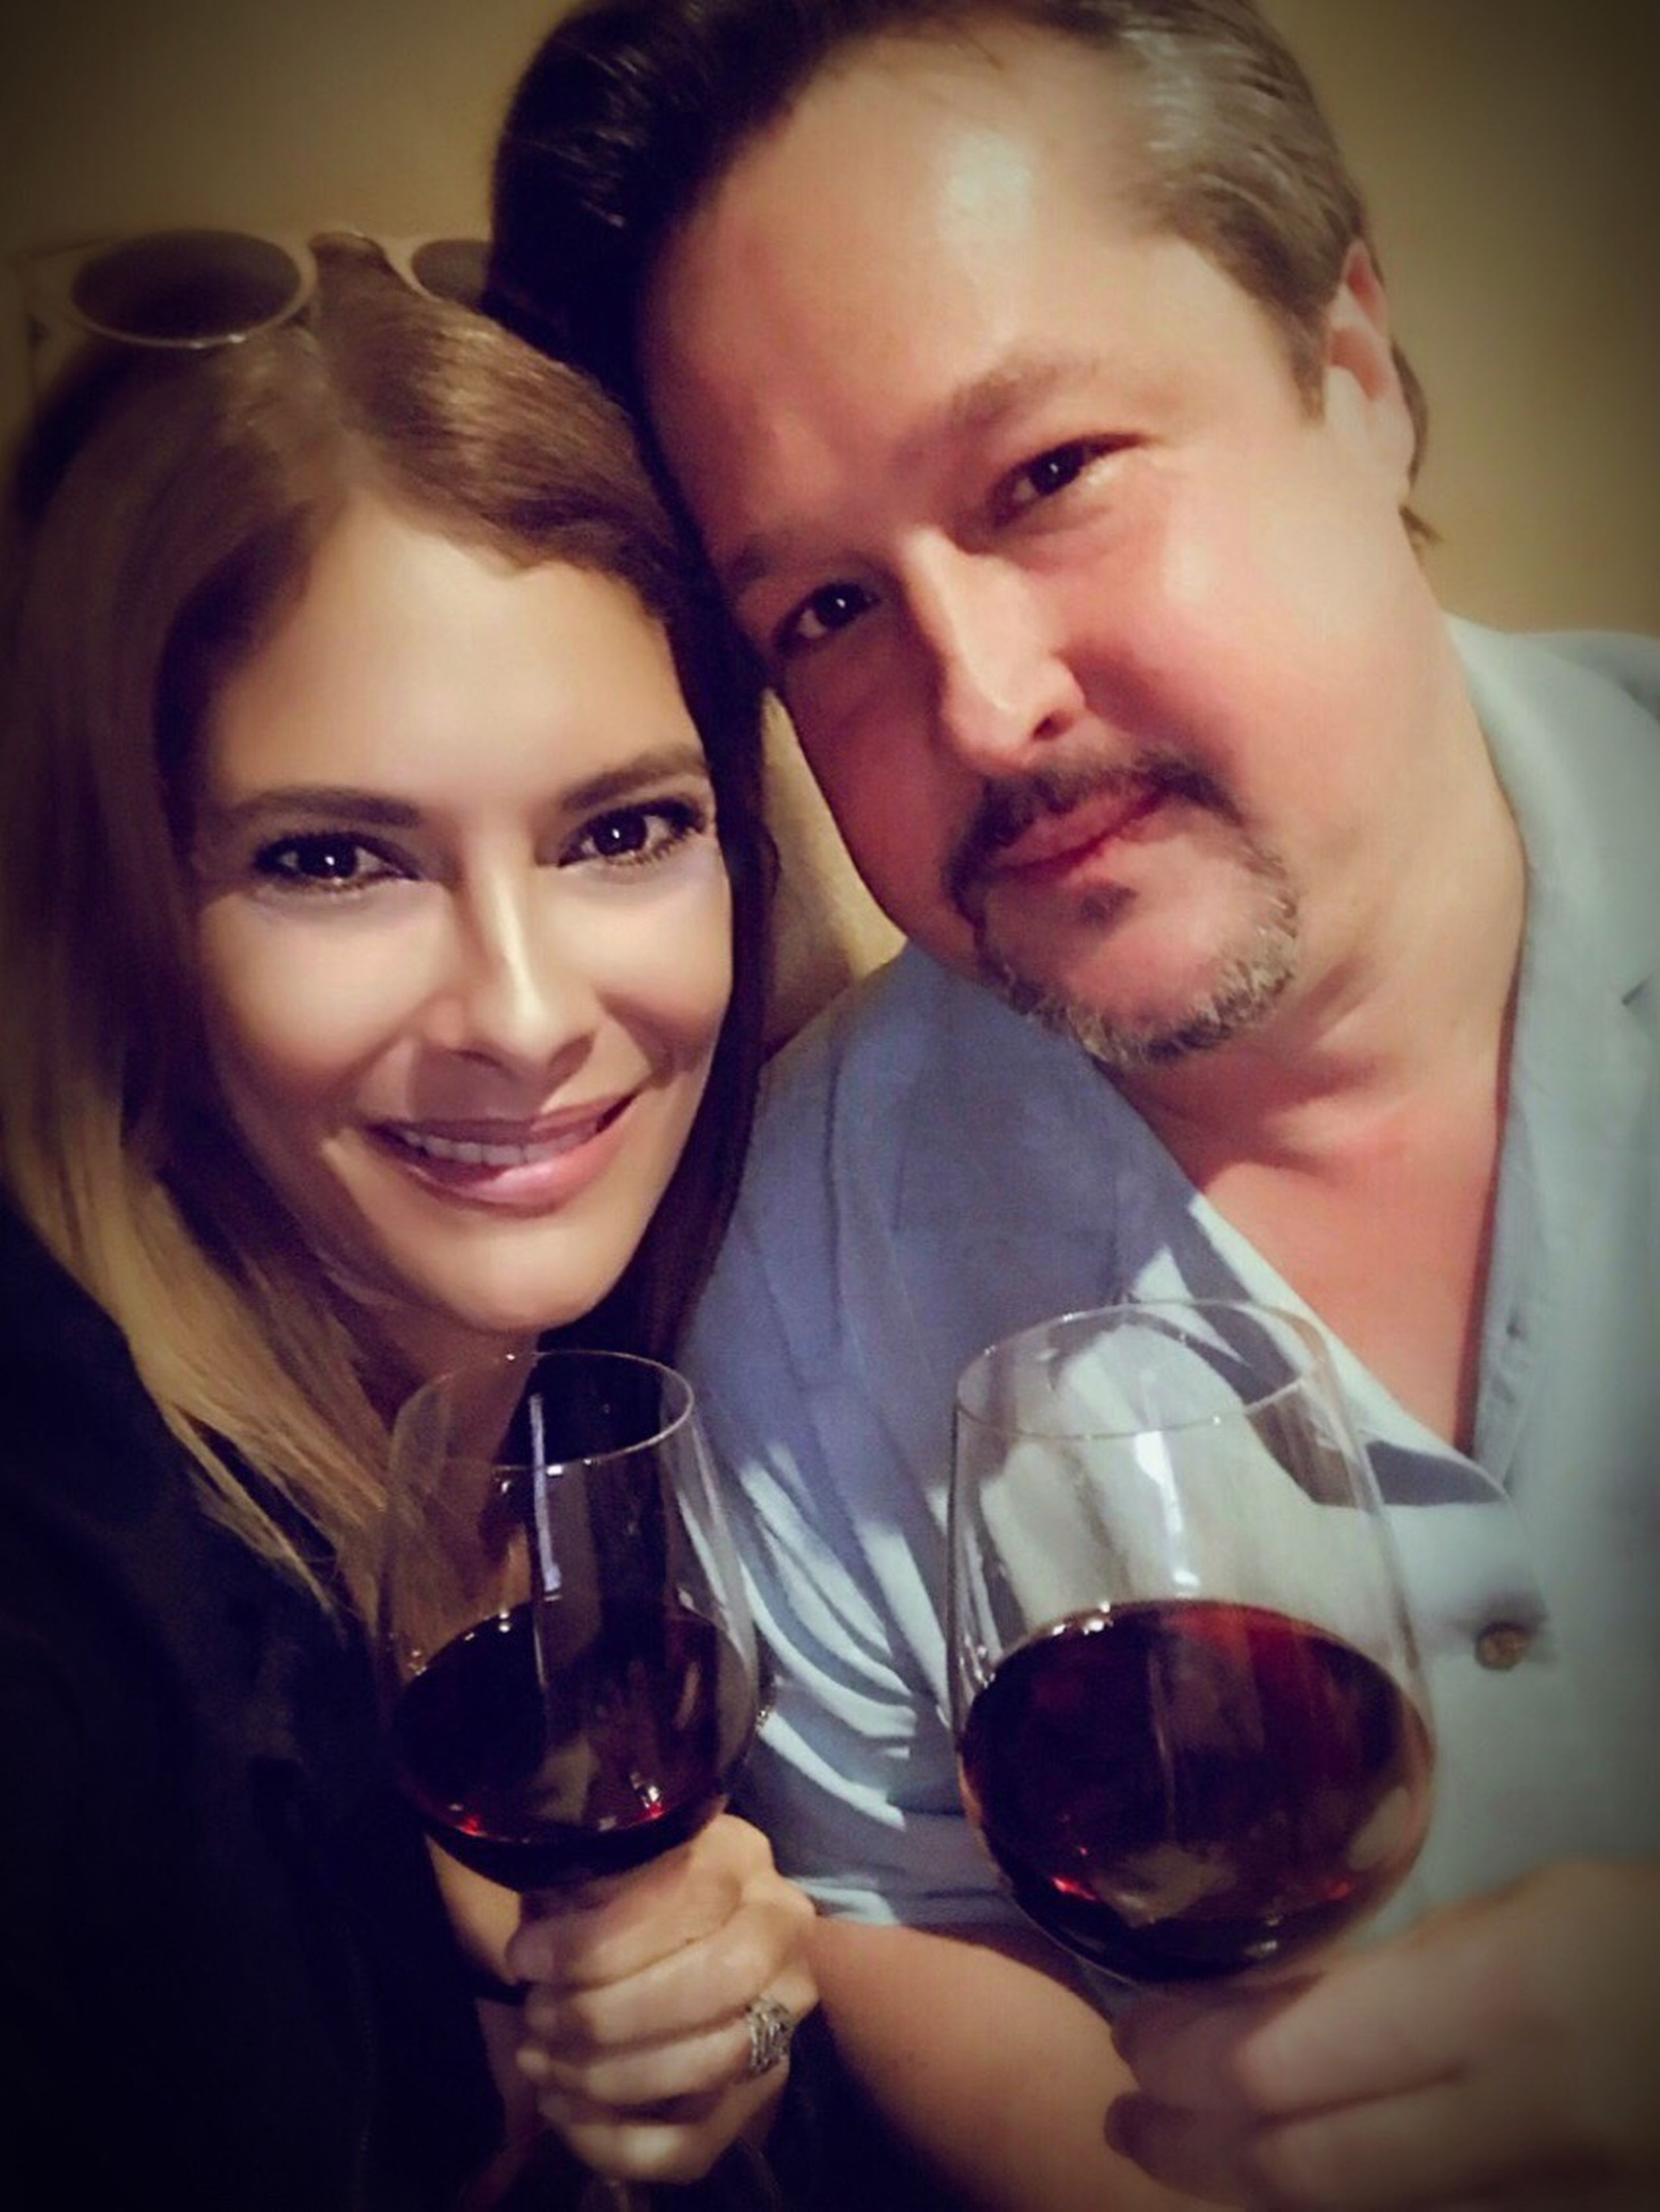 two people, wineglass, drinking, wine, alcohol, togetherness, friendship, lifestyles, holding, enjoyment, adults only, young adult, night, red wine, nightlife, cheerful, celebration, party - social event, leisure activity, happy hour, women, happiness, smiling, adult, champagne flute, refreshment, young women, people, portrait, indoors, men, close-up, winetasting